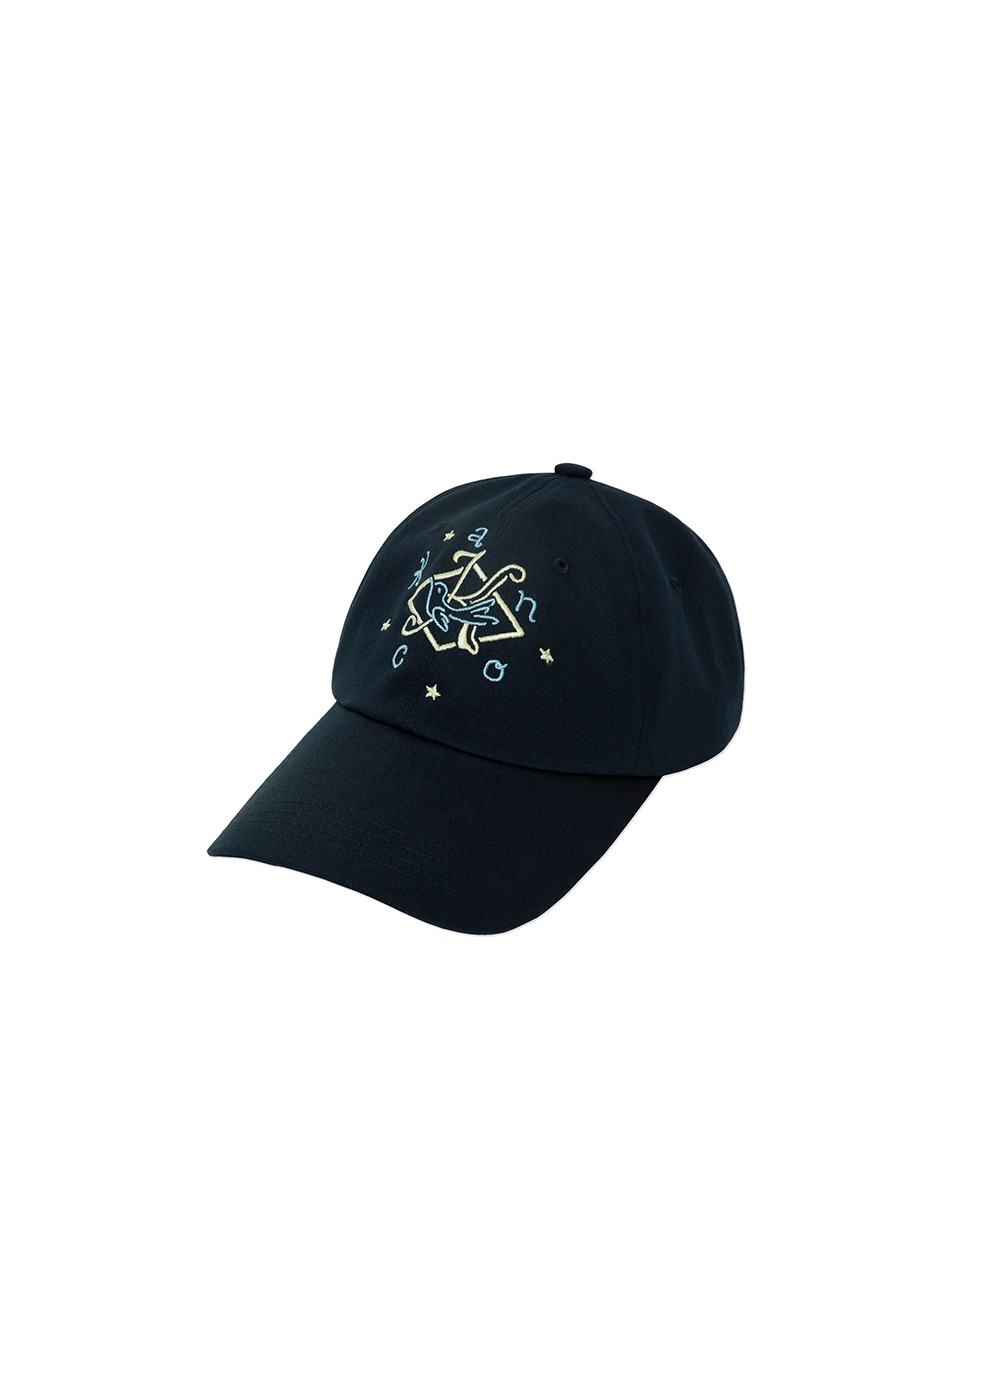 KANCO GRAPHIC CAP navy